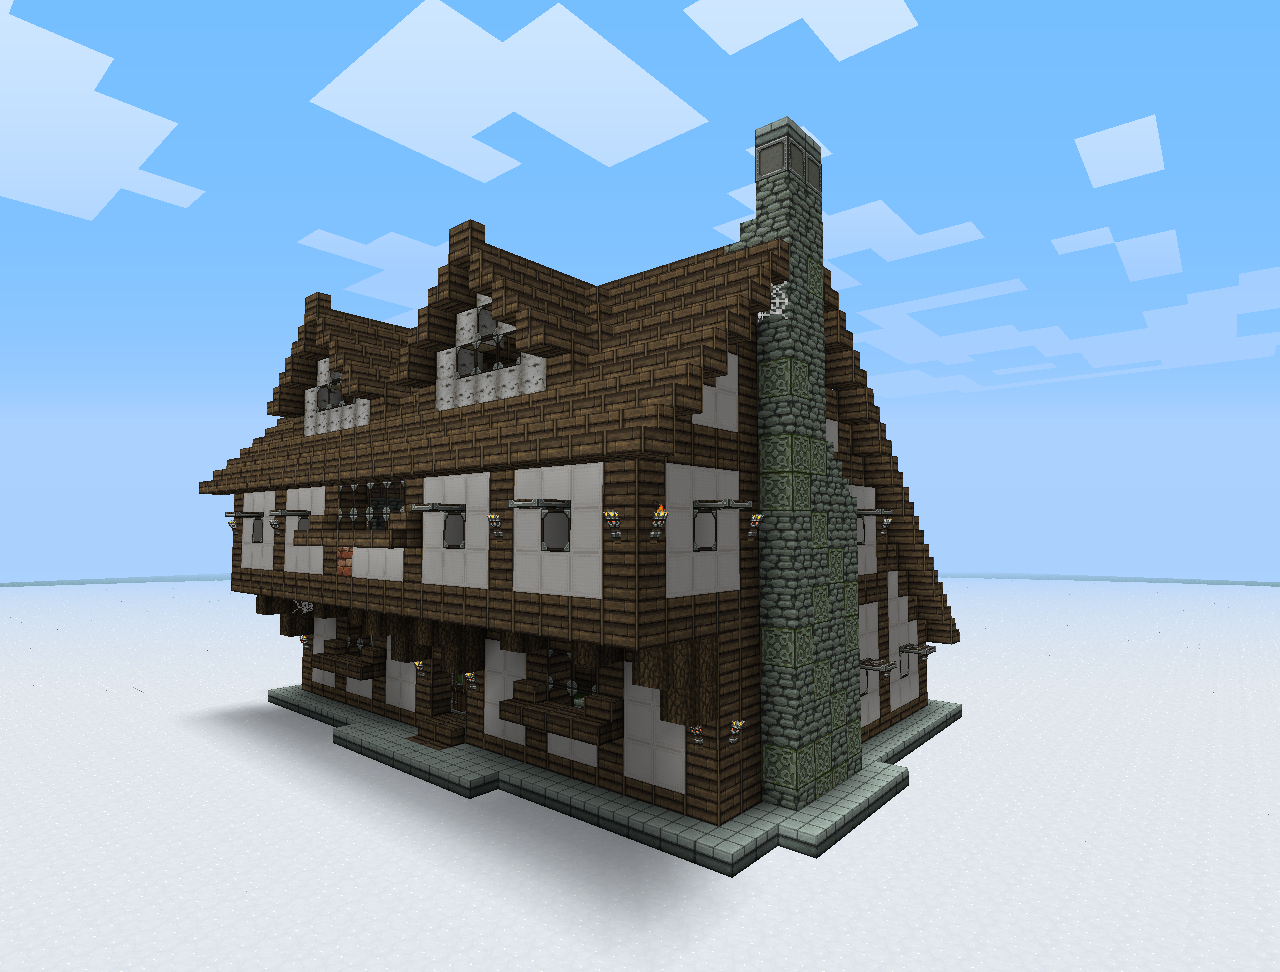 Maison minecraft minecraft pinterest minecraft et for Minecraft maison design